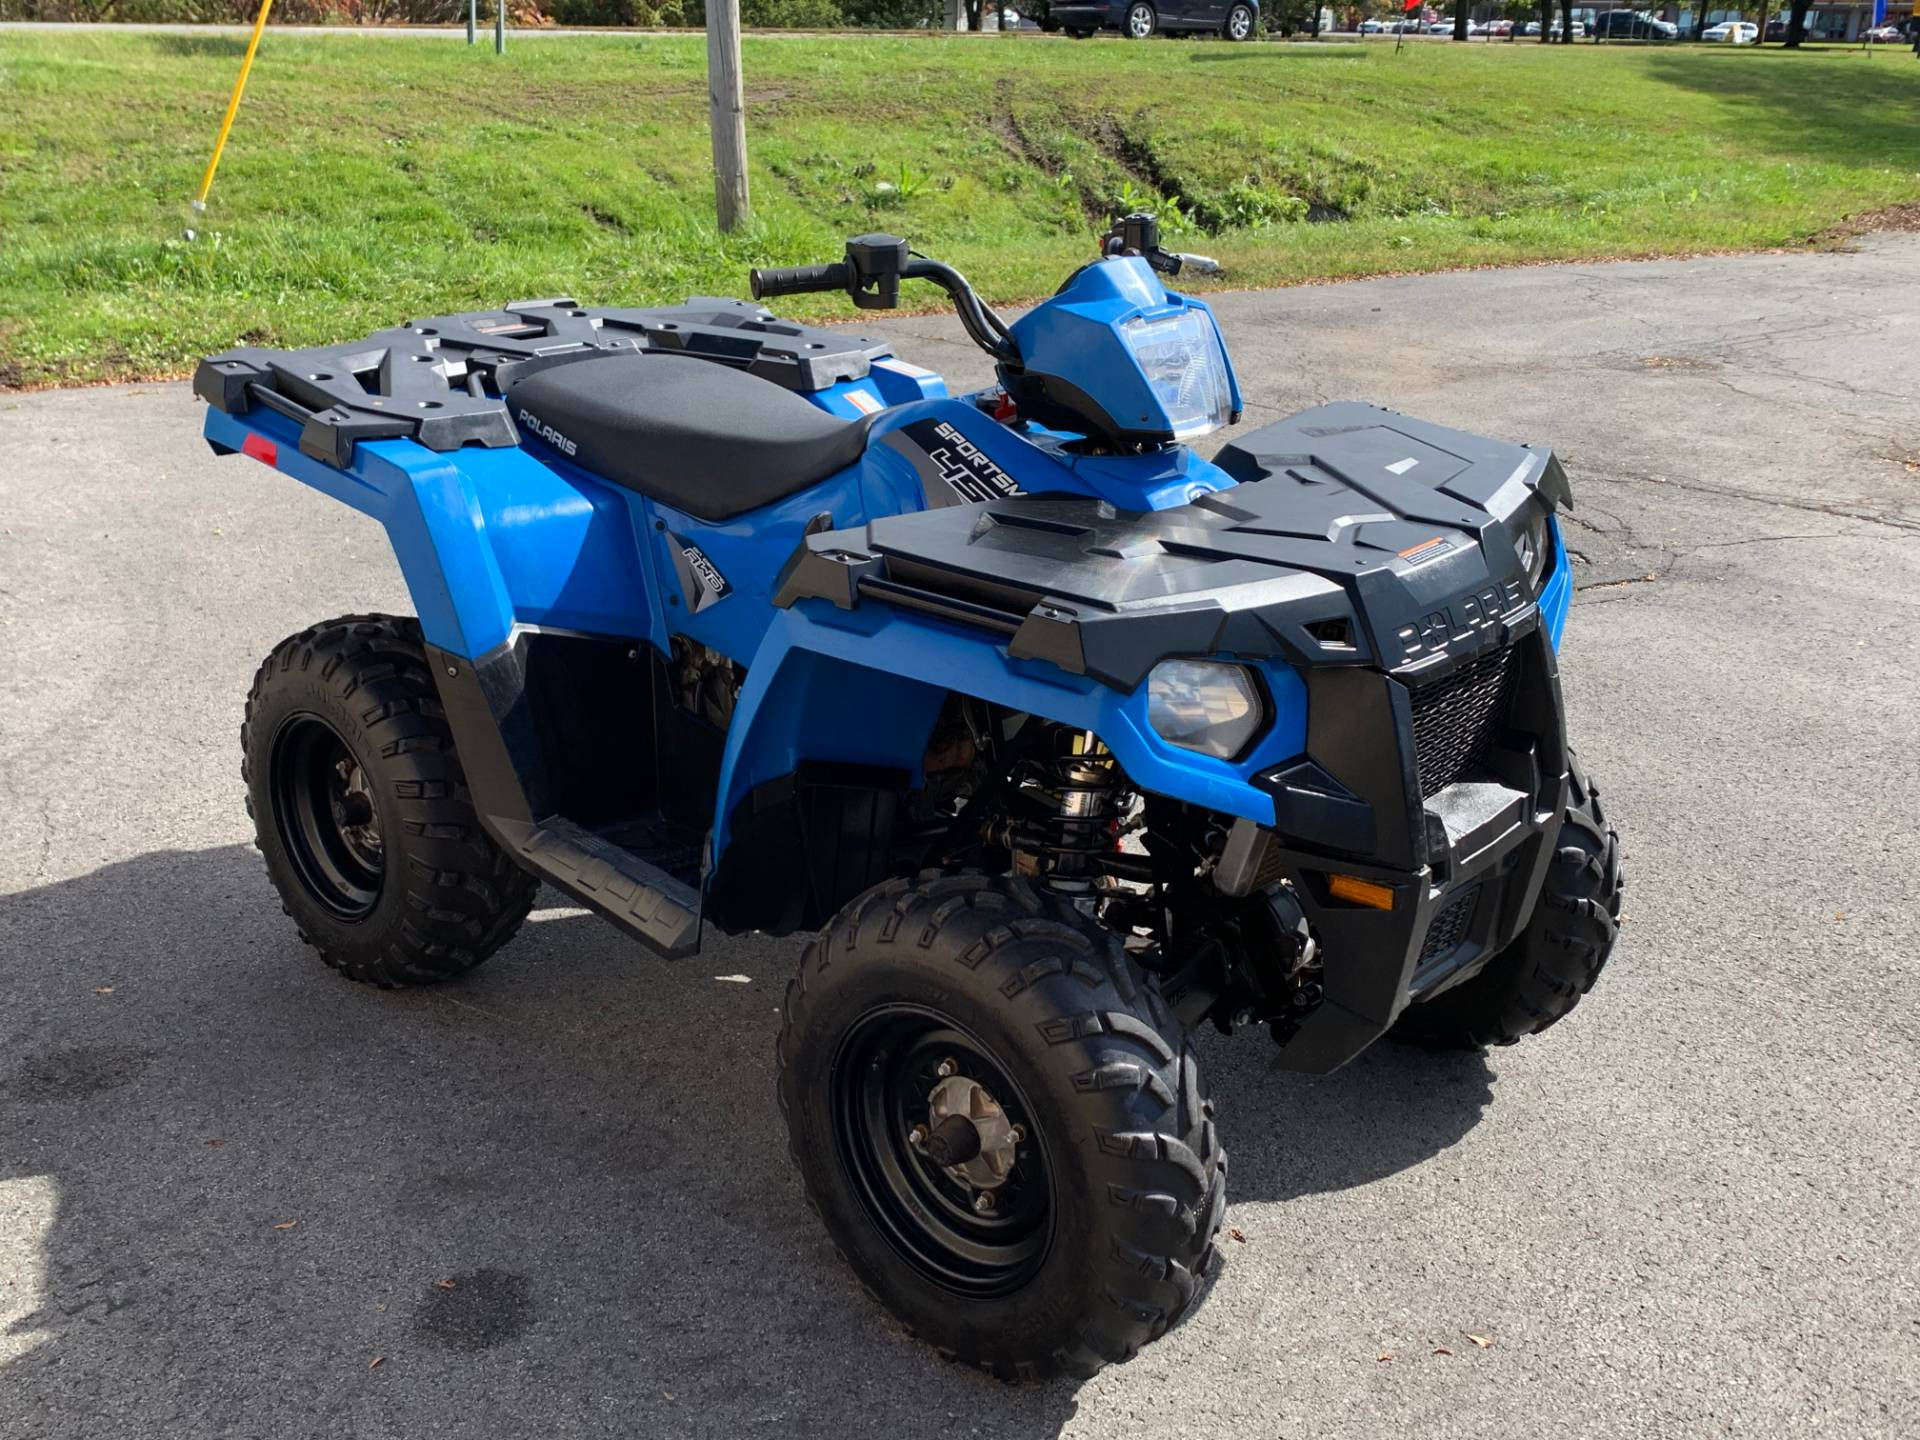 2017 Polaris Sportsman 450 H.O. in Herkimer, New York - Photo 5